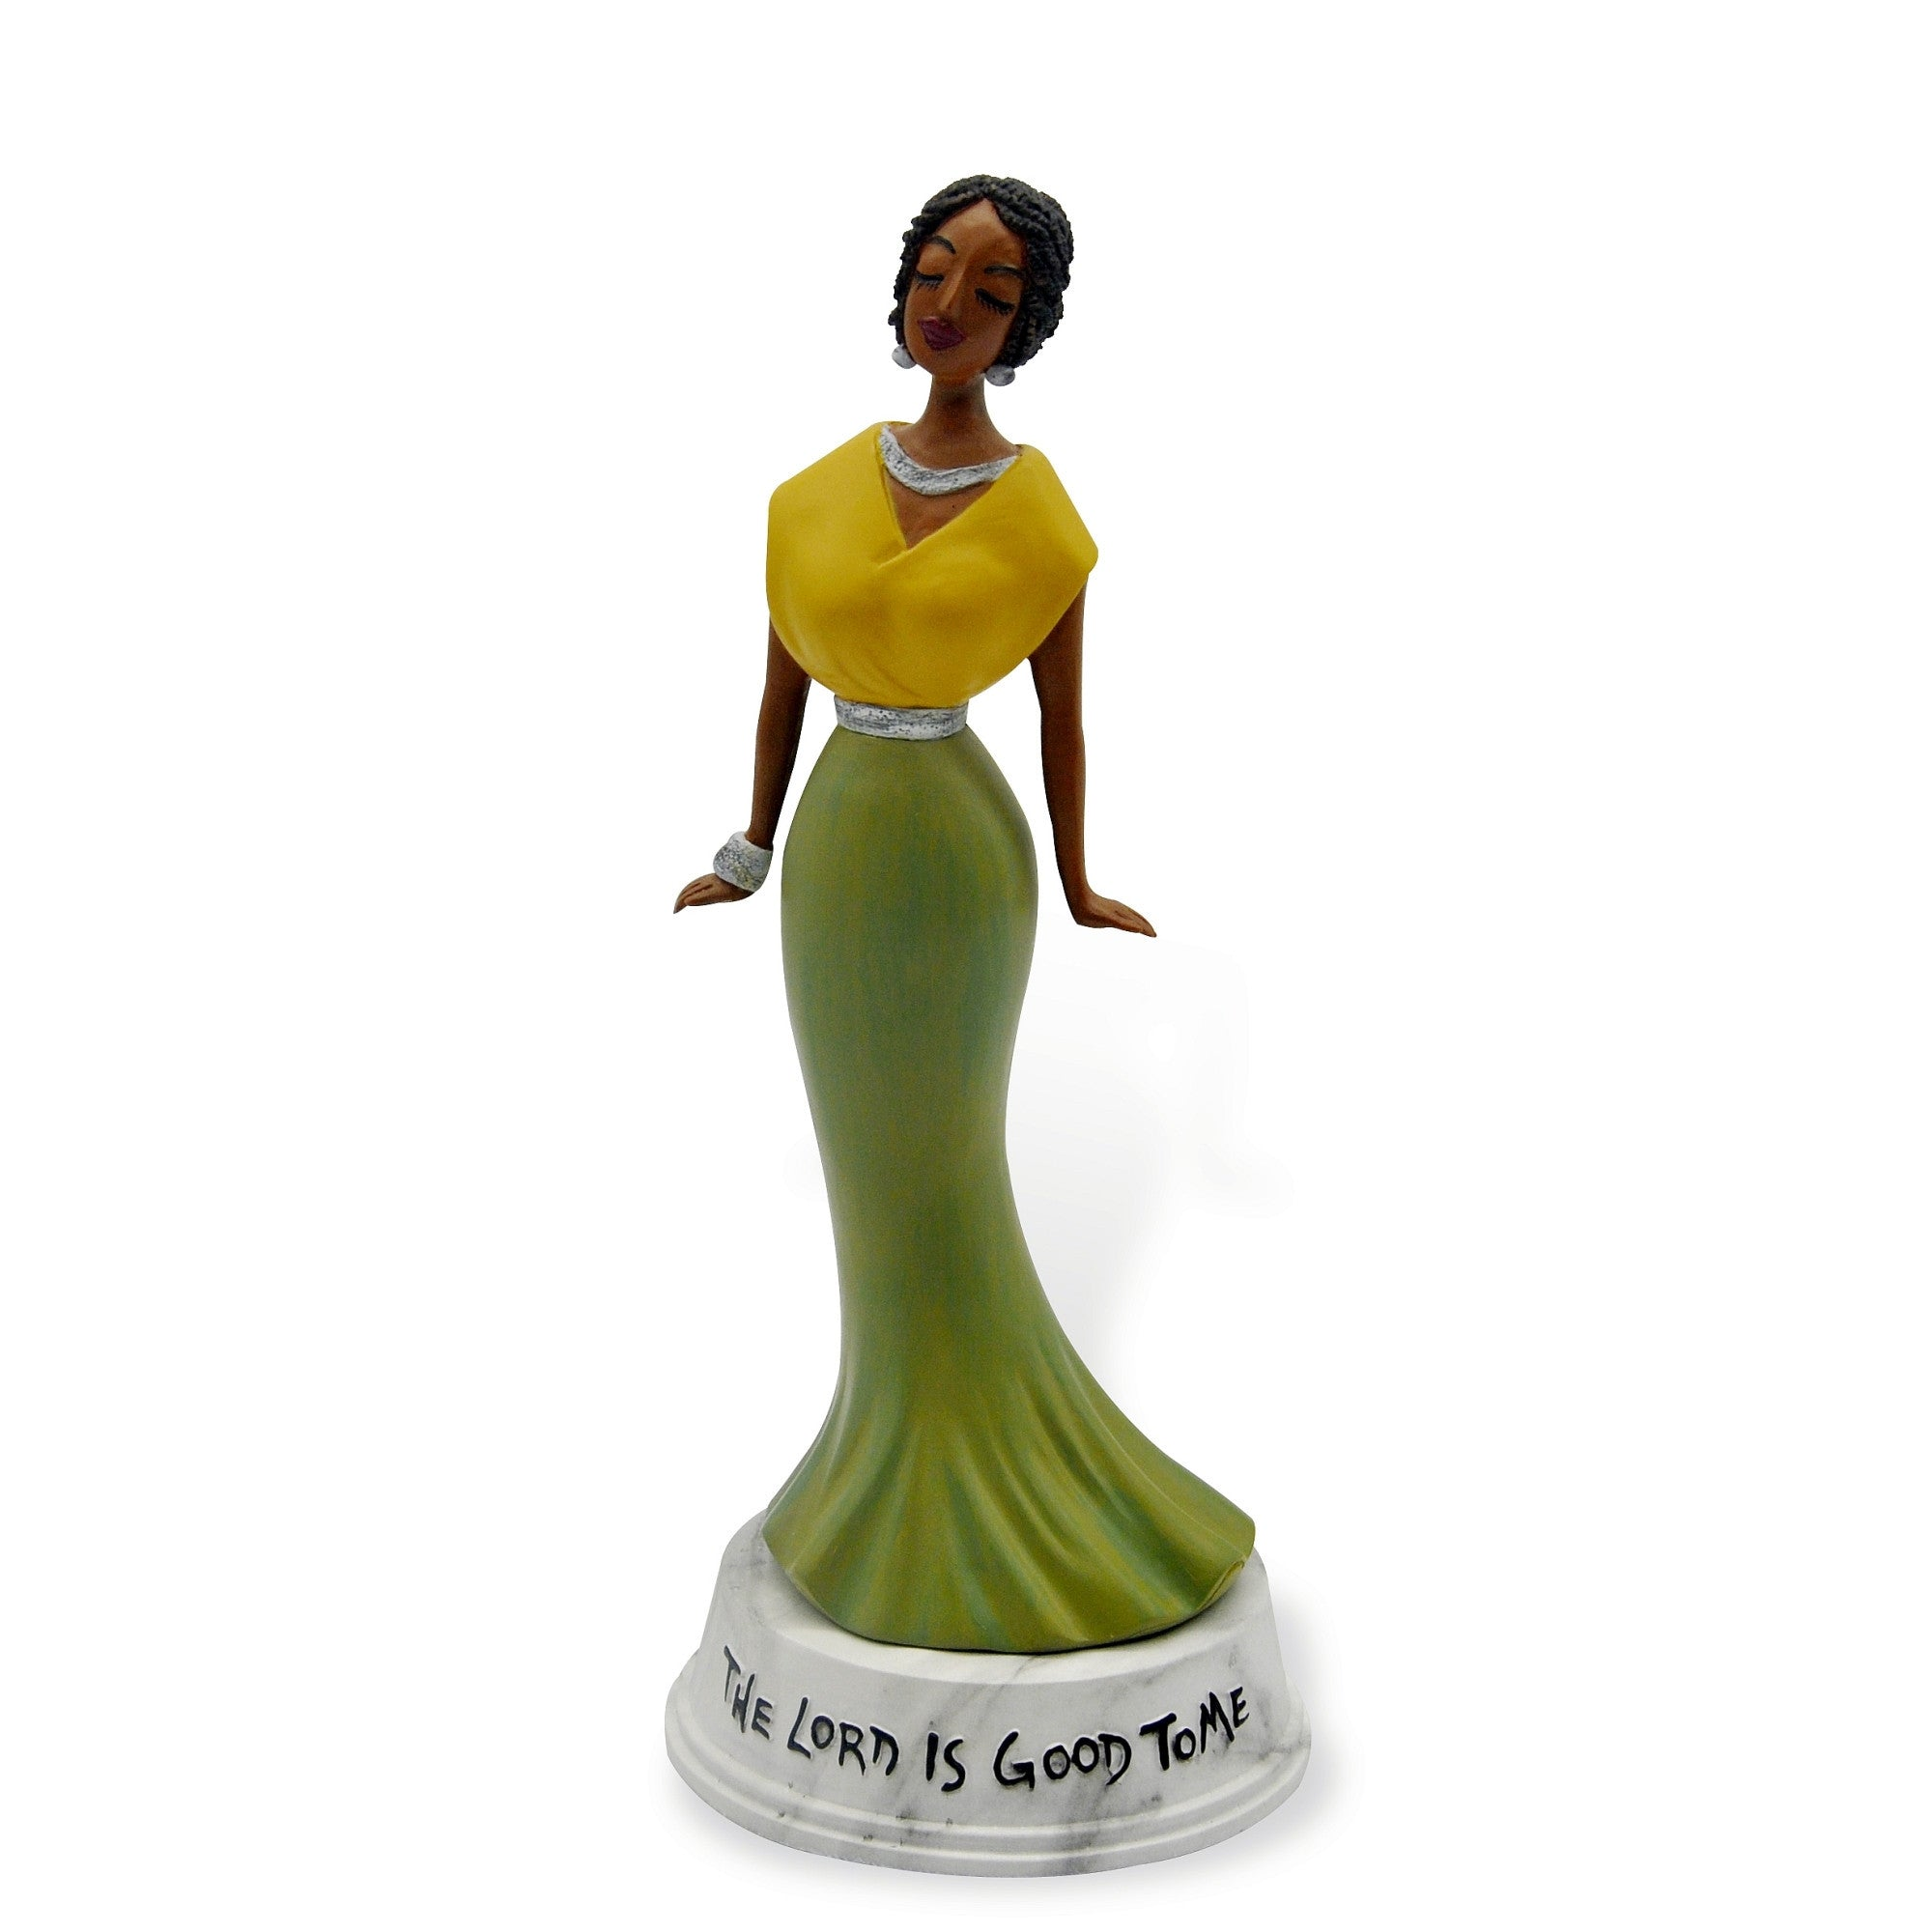 The Lord is Good to Me: Cidne Wallace Figurine by Shades of Color